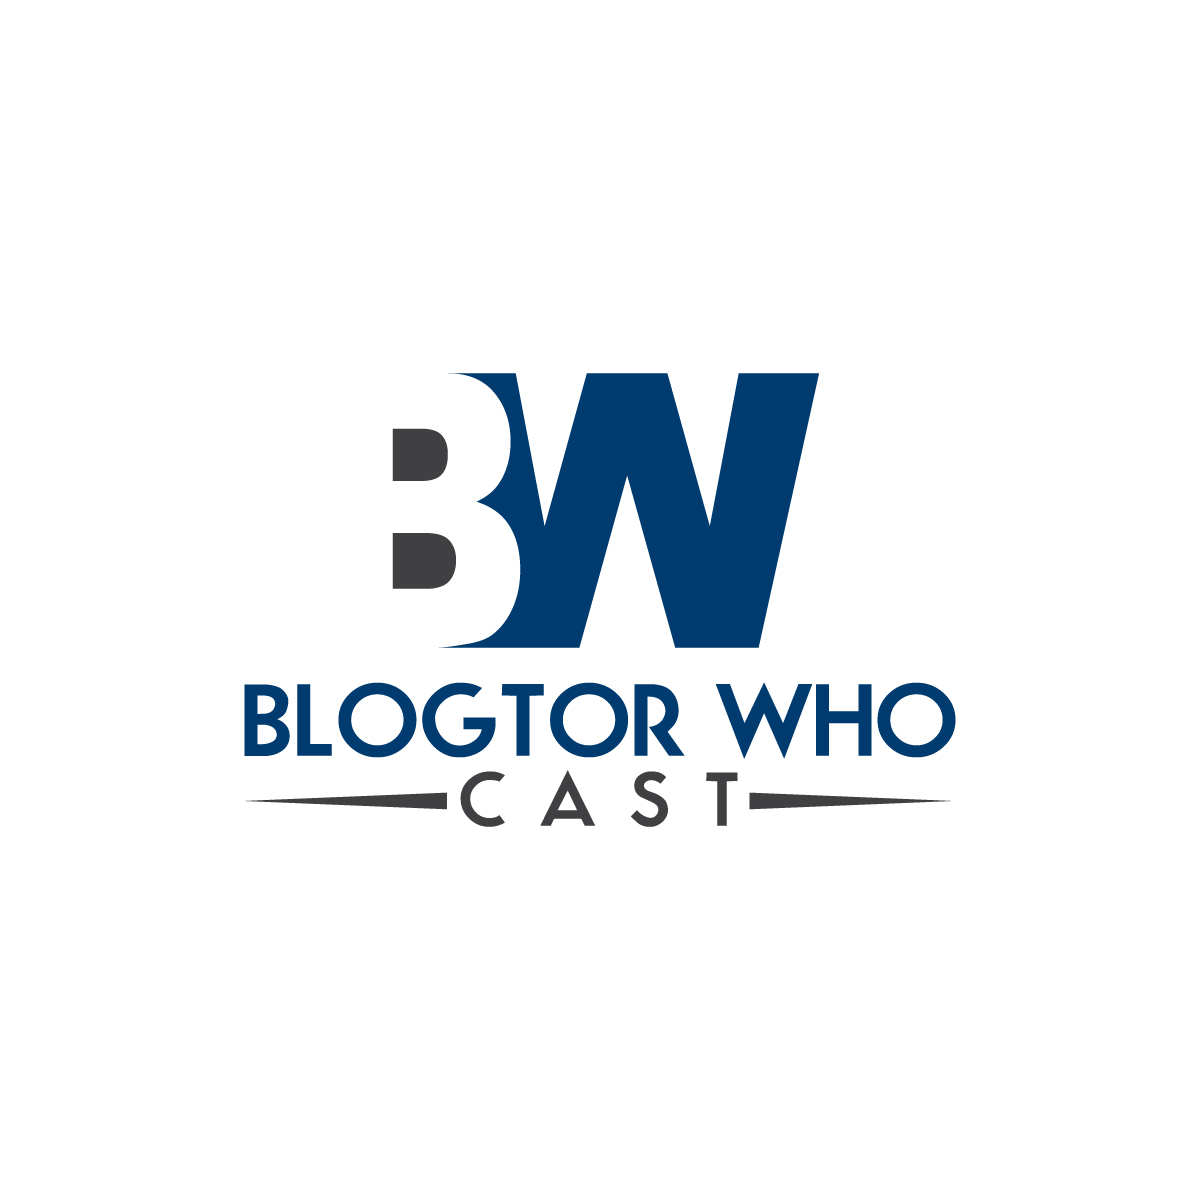 BlogtorWhoCast: Episode 12 'Doctor Who Review: The Monk